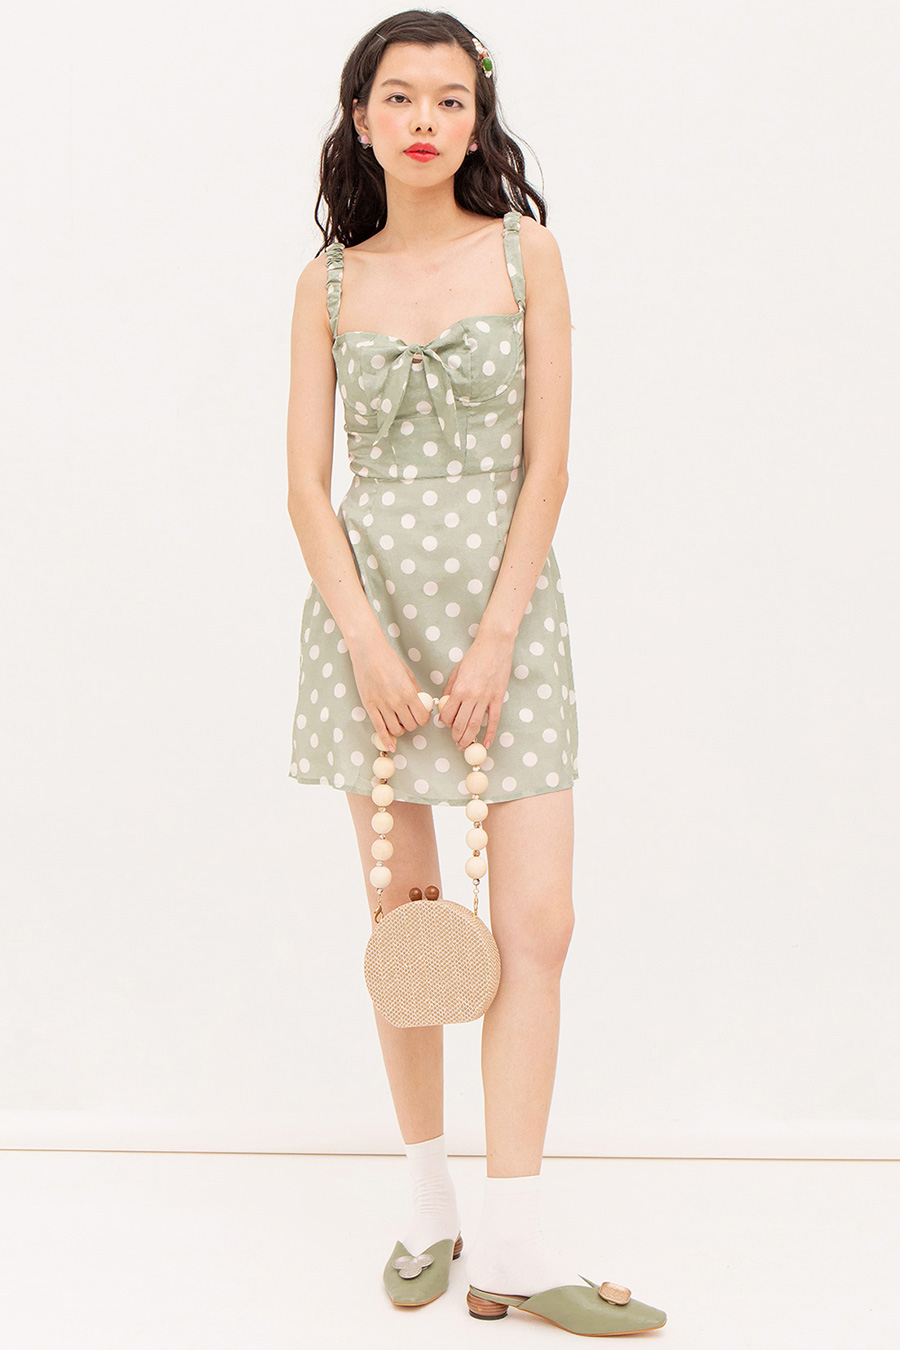 LOU DRESS - MINT DOTTY